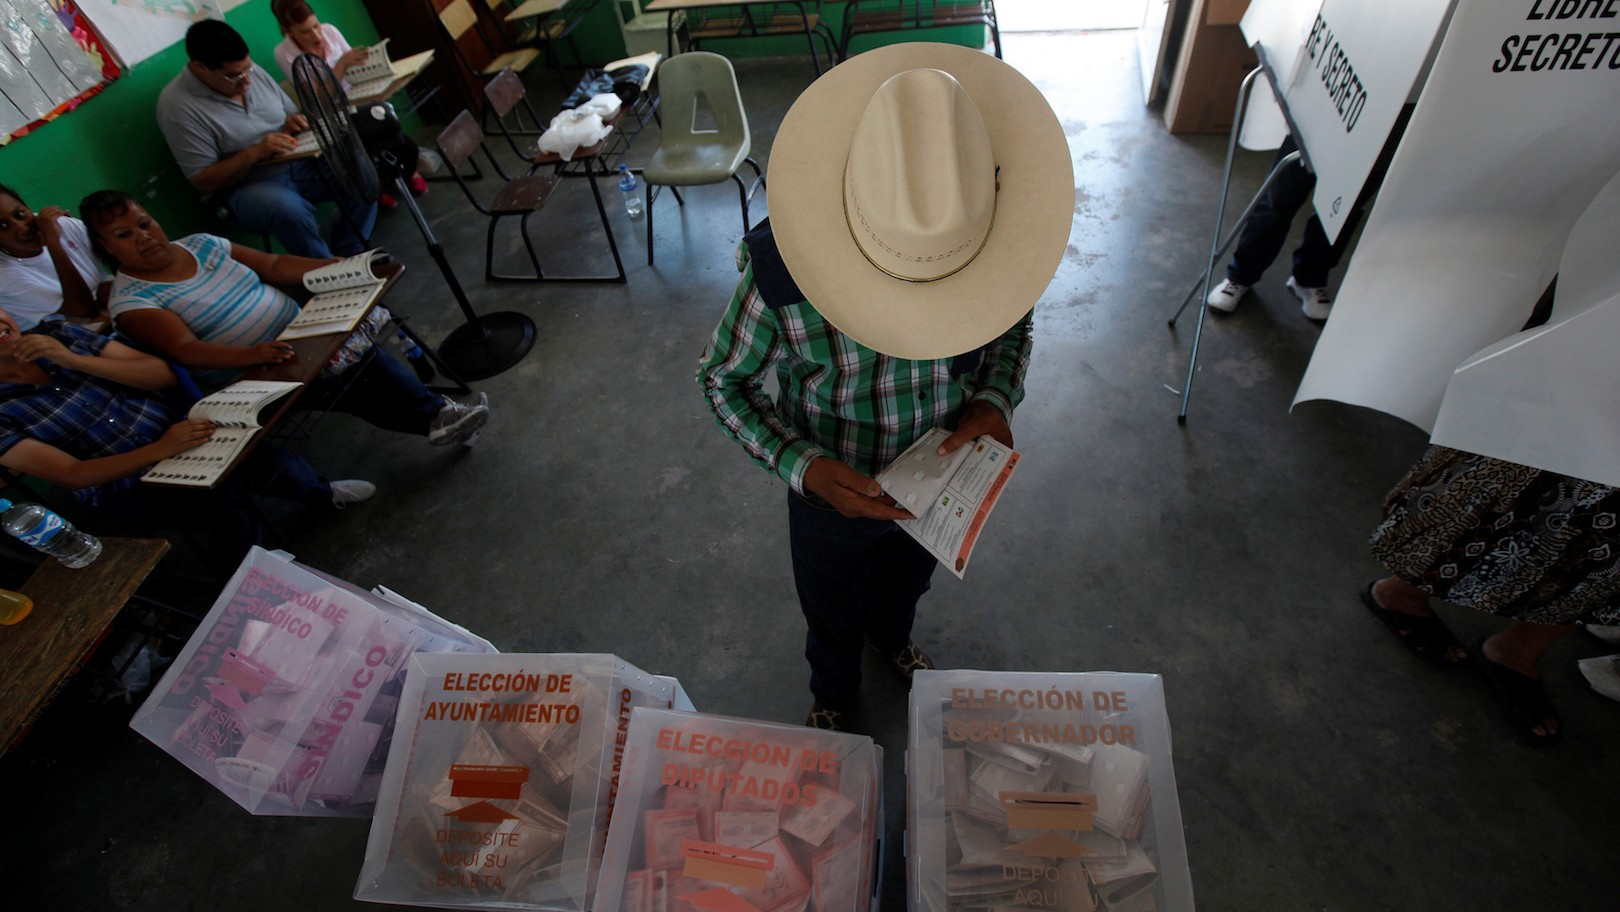 Mexico's Ruling Party Just Had a Very Bad Election Day